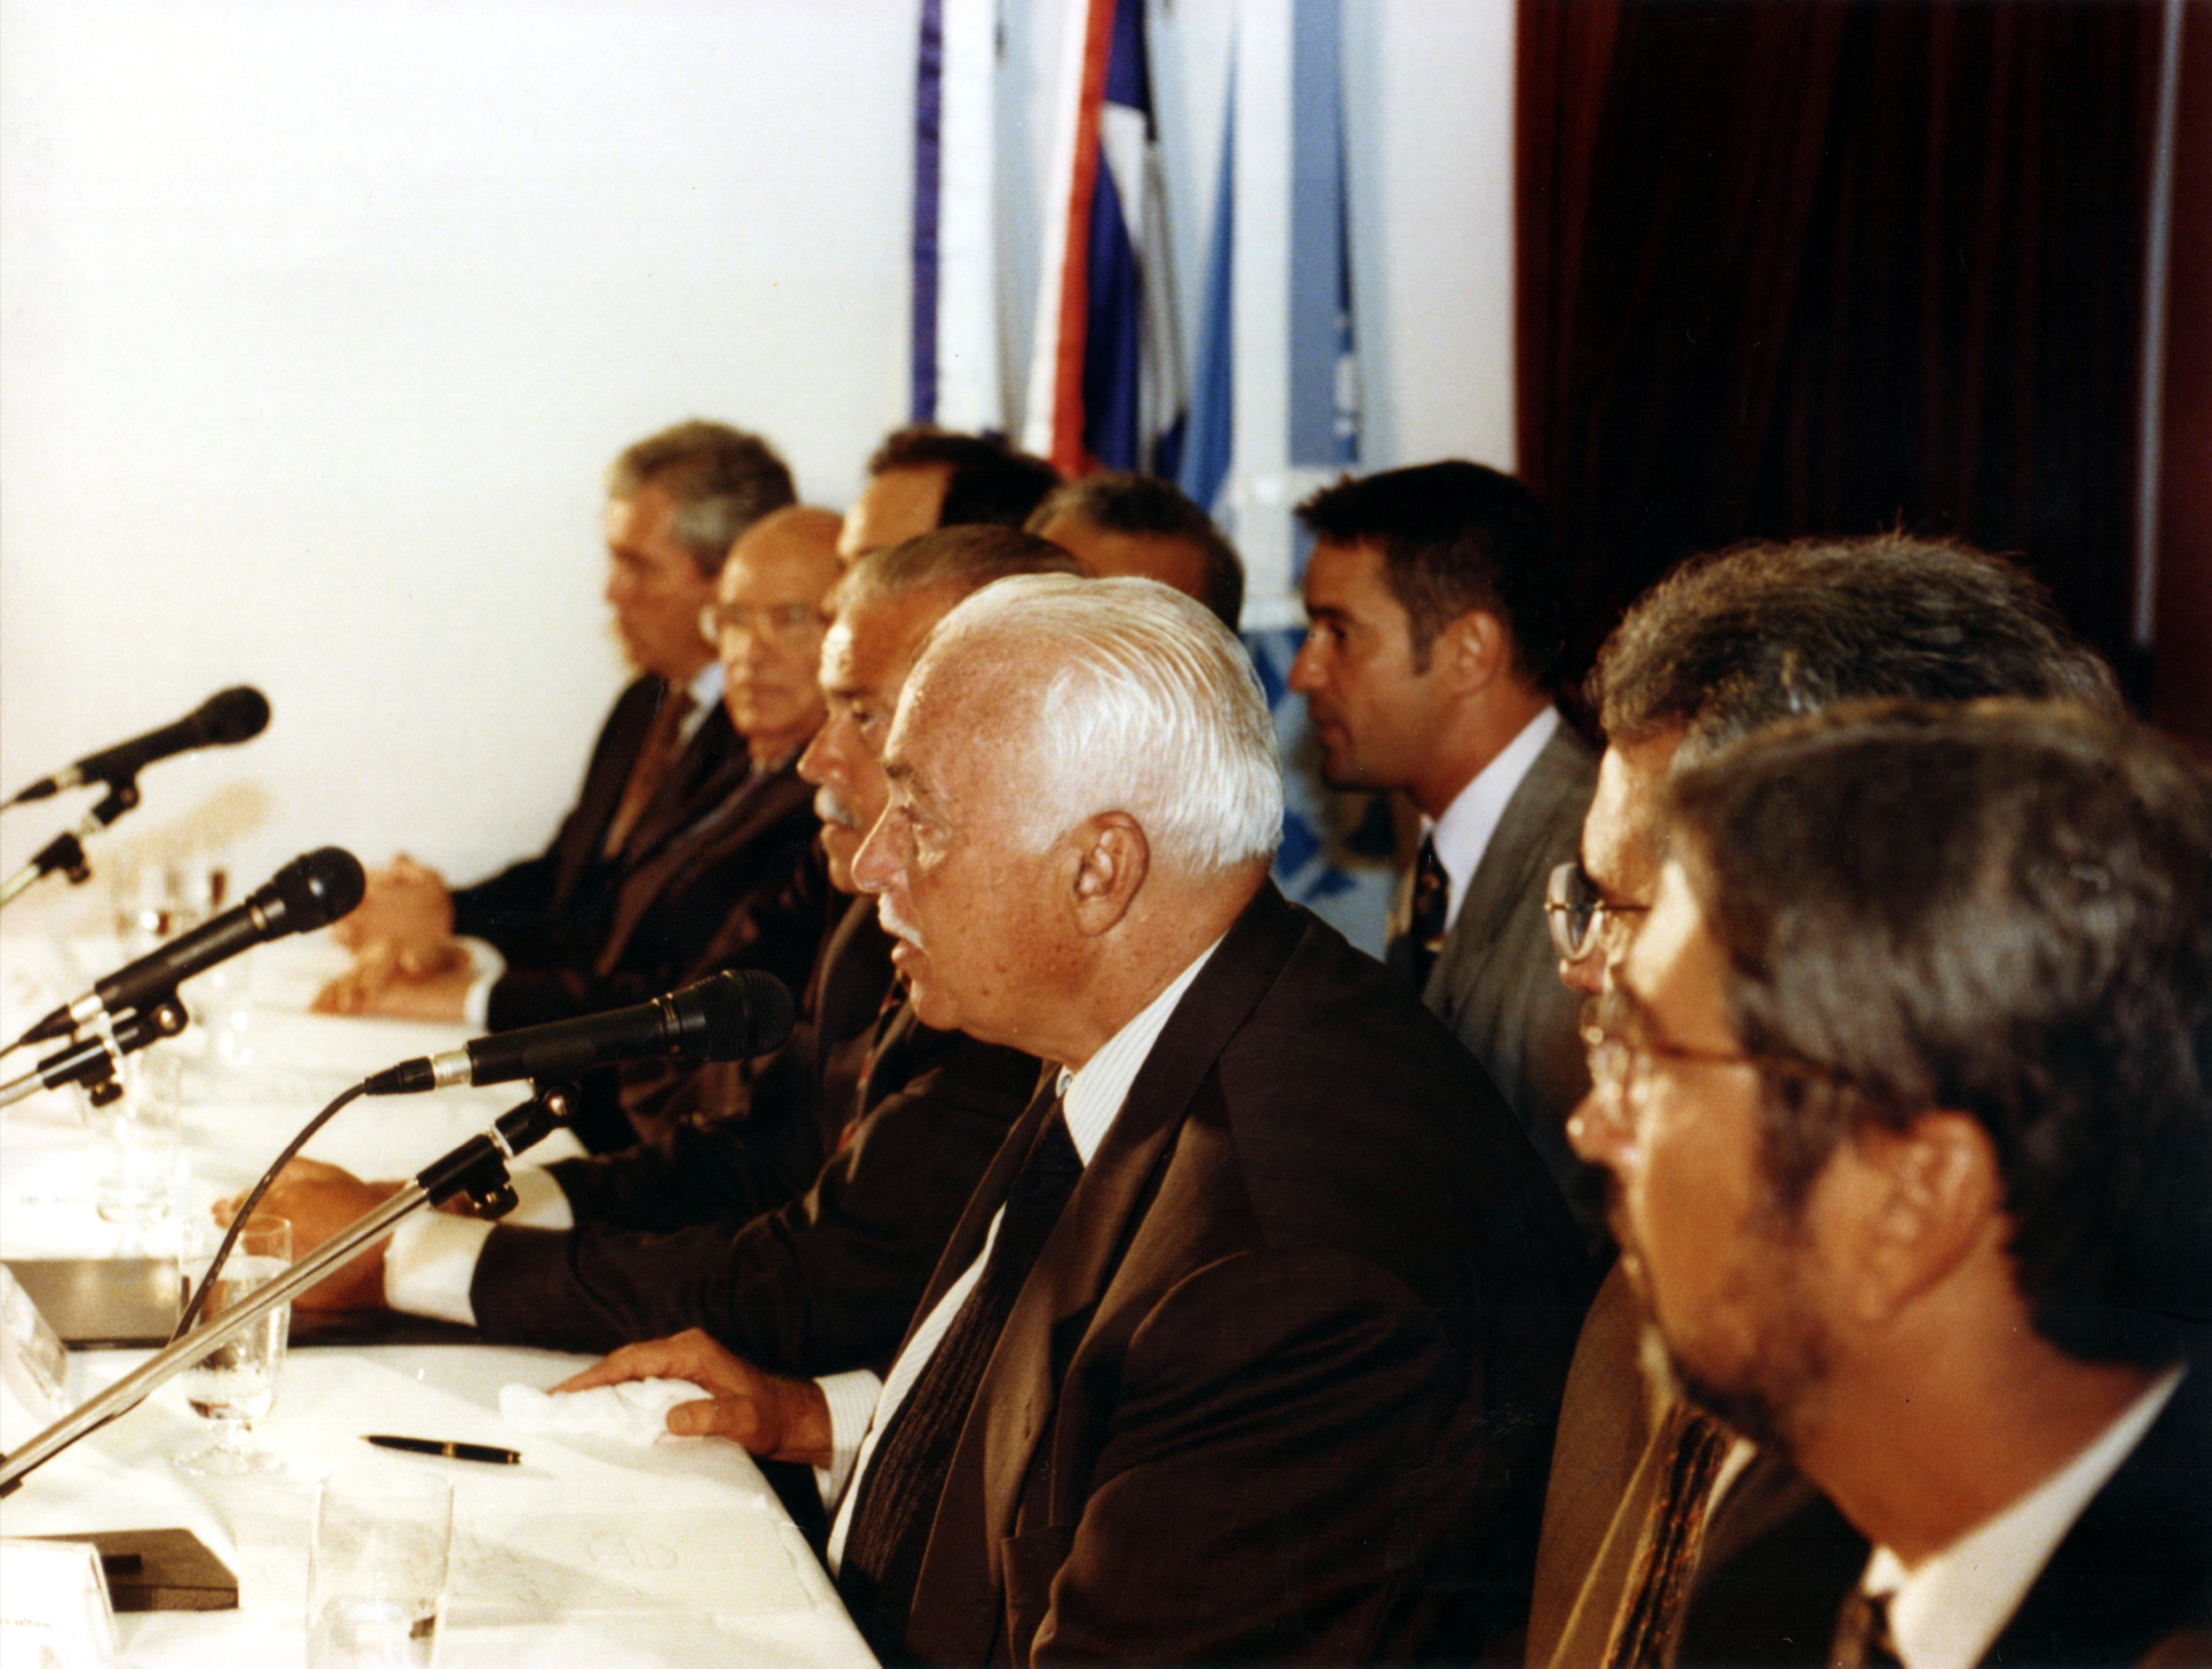 Antonio Carlos Magalhães (Governor of Bahia) during the Opening of Luís Eduardo Magalhães Foundation, nov/16/98, Salvador, Bahia